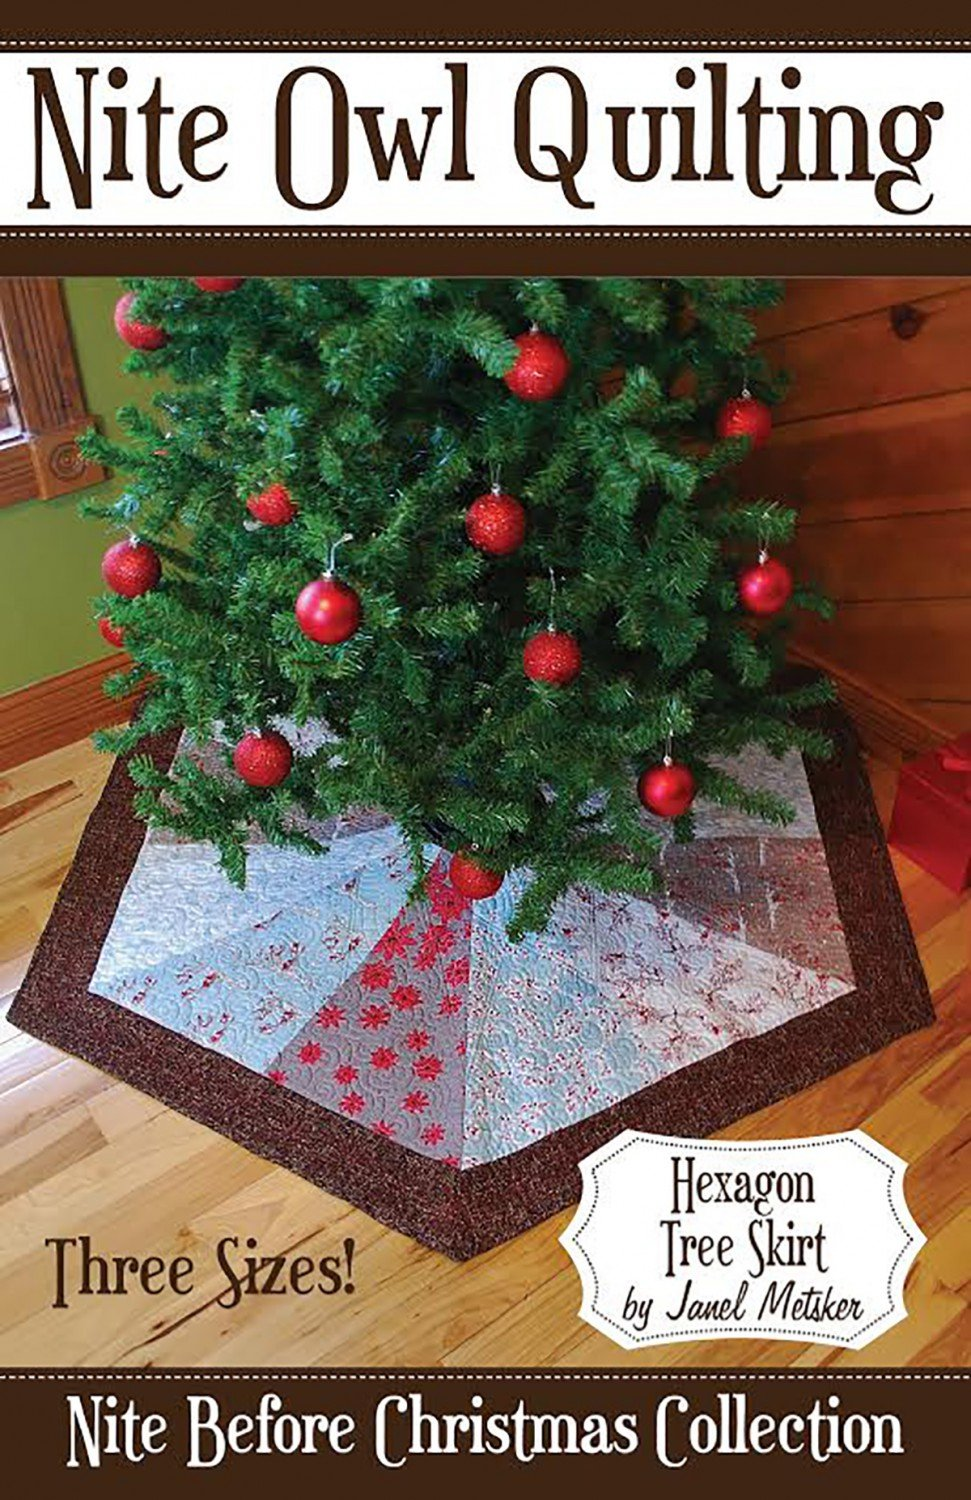 Night Before Christmas - Nite Owl Quilting